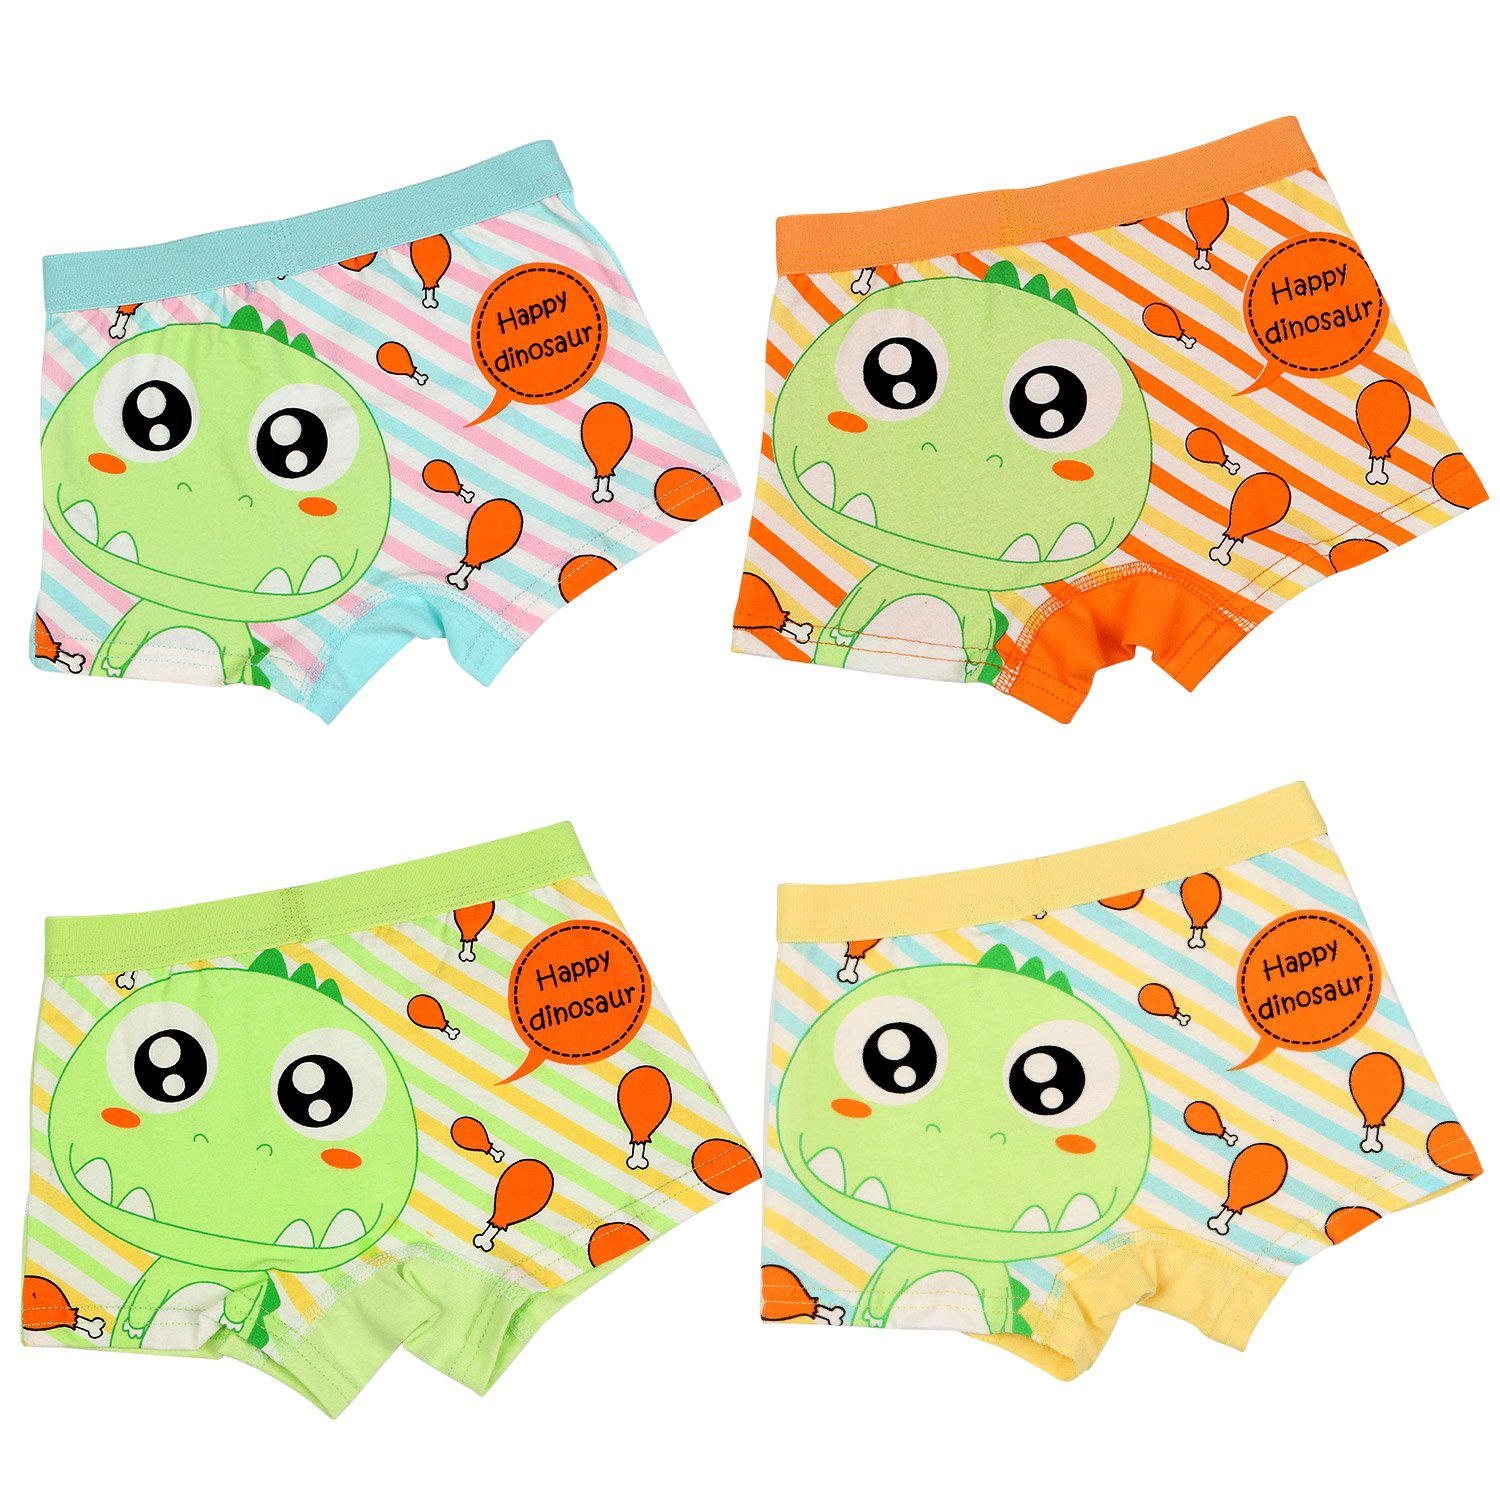 BOOPH Little Boys Underwear, Cotton Dinosaur Baby Toddler Boxer Briefs Underpant for Boy 4-6 Years (Pack of 4) by BOOPH (Image #3)